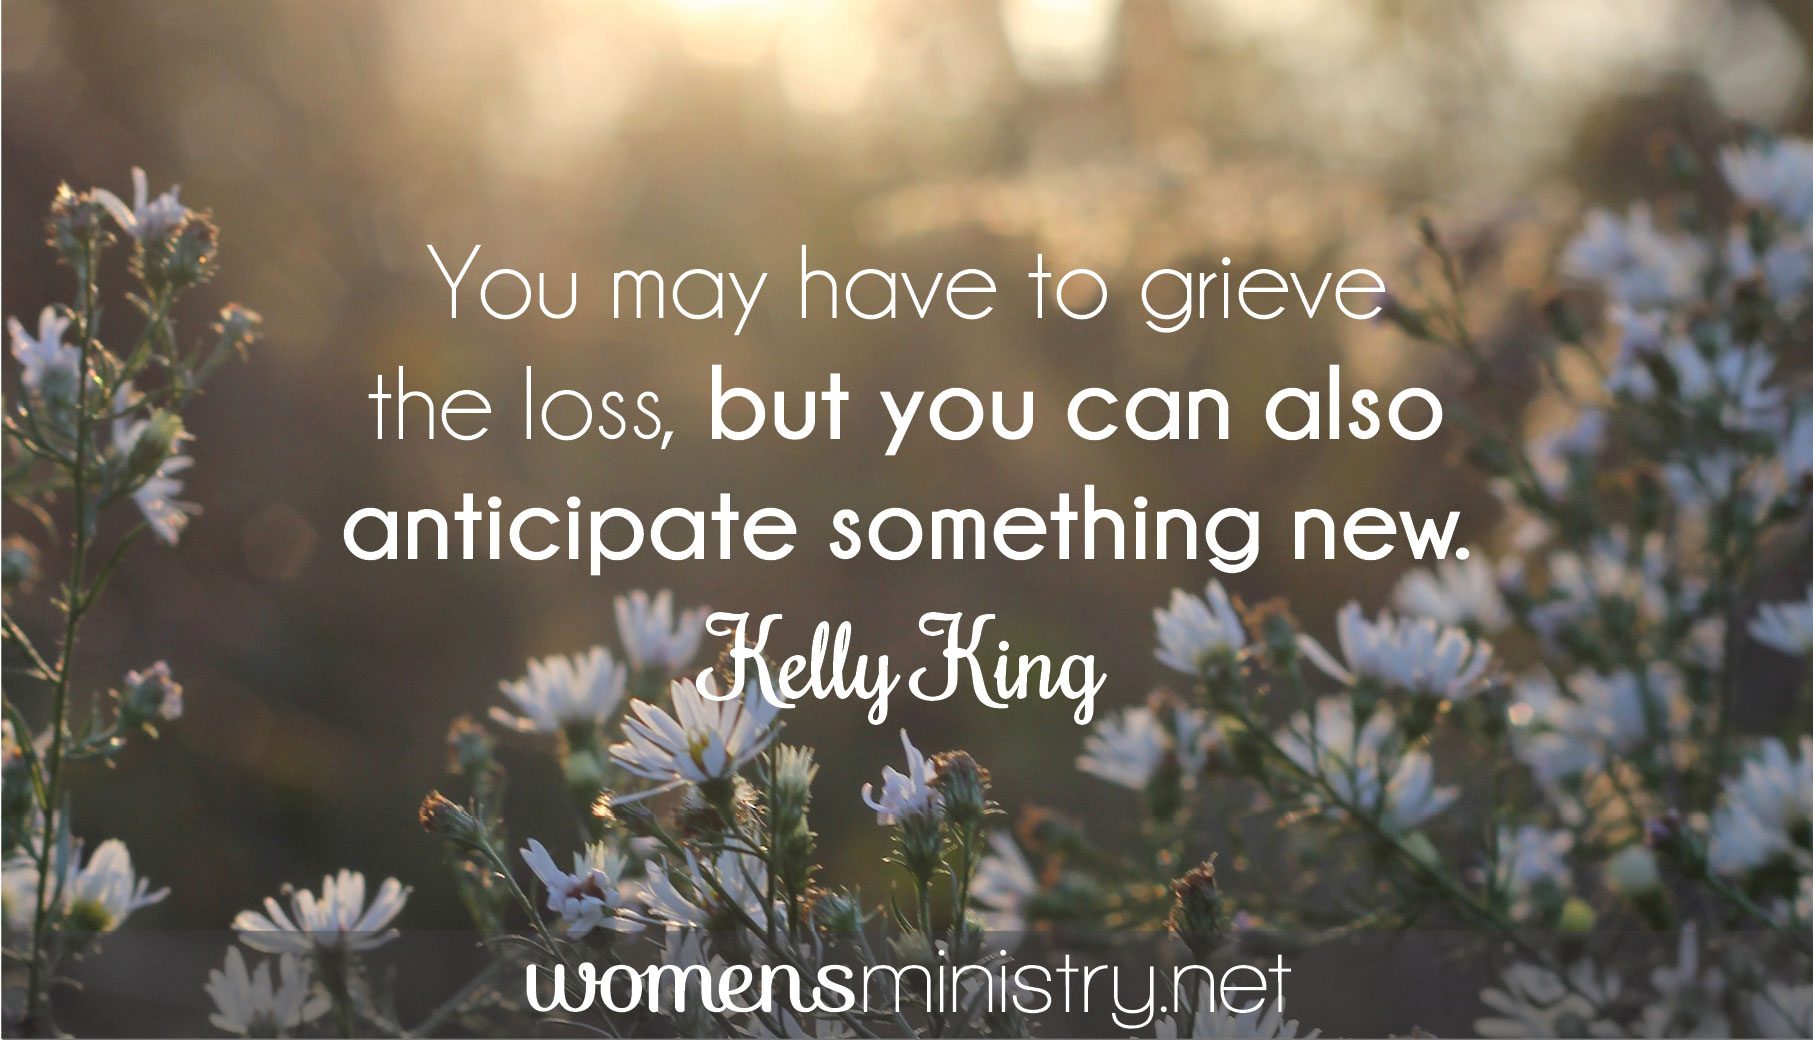 Kelly King quote image